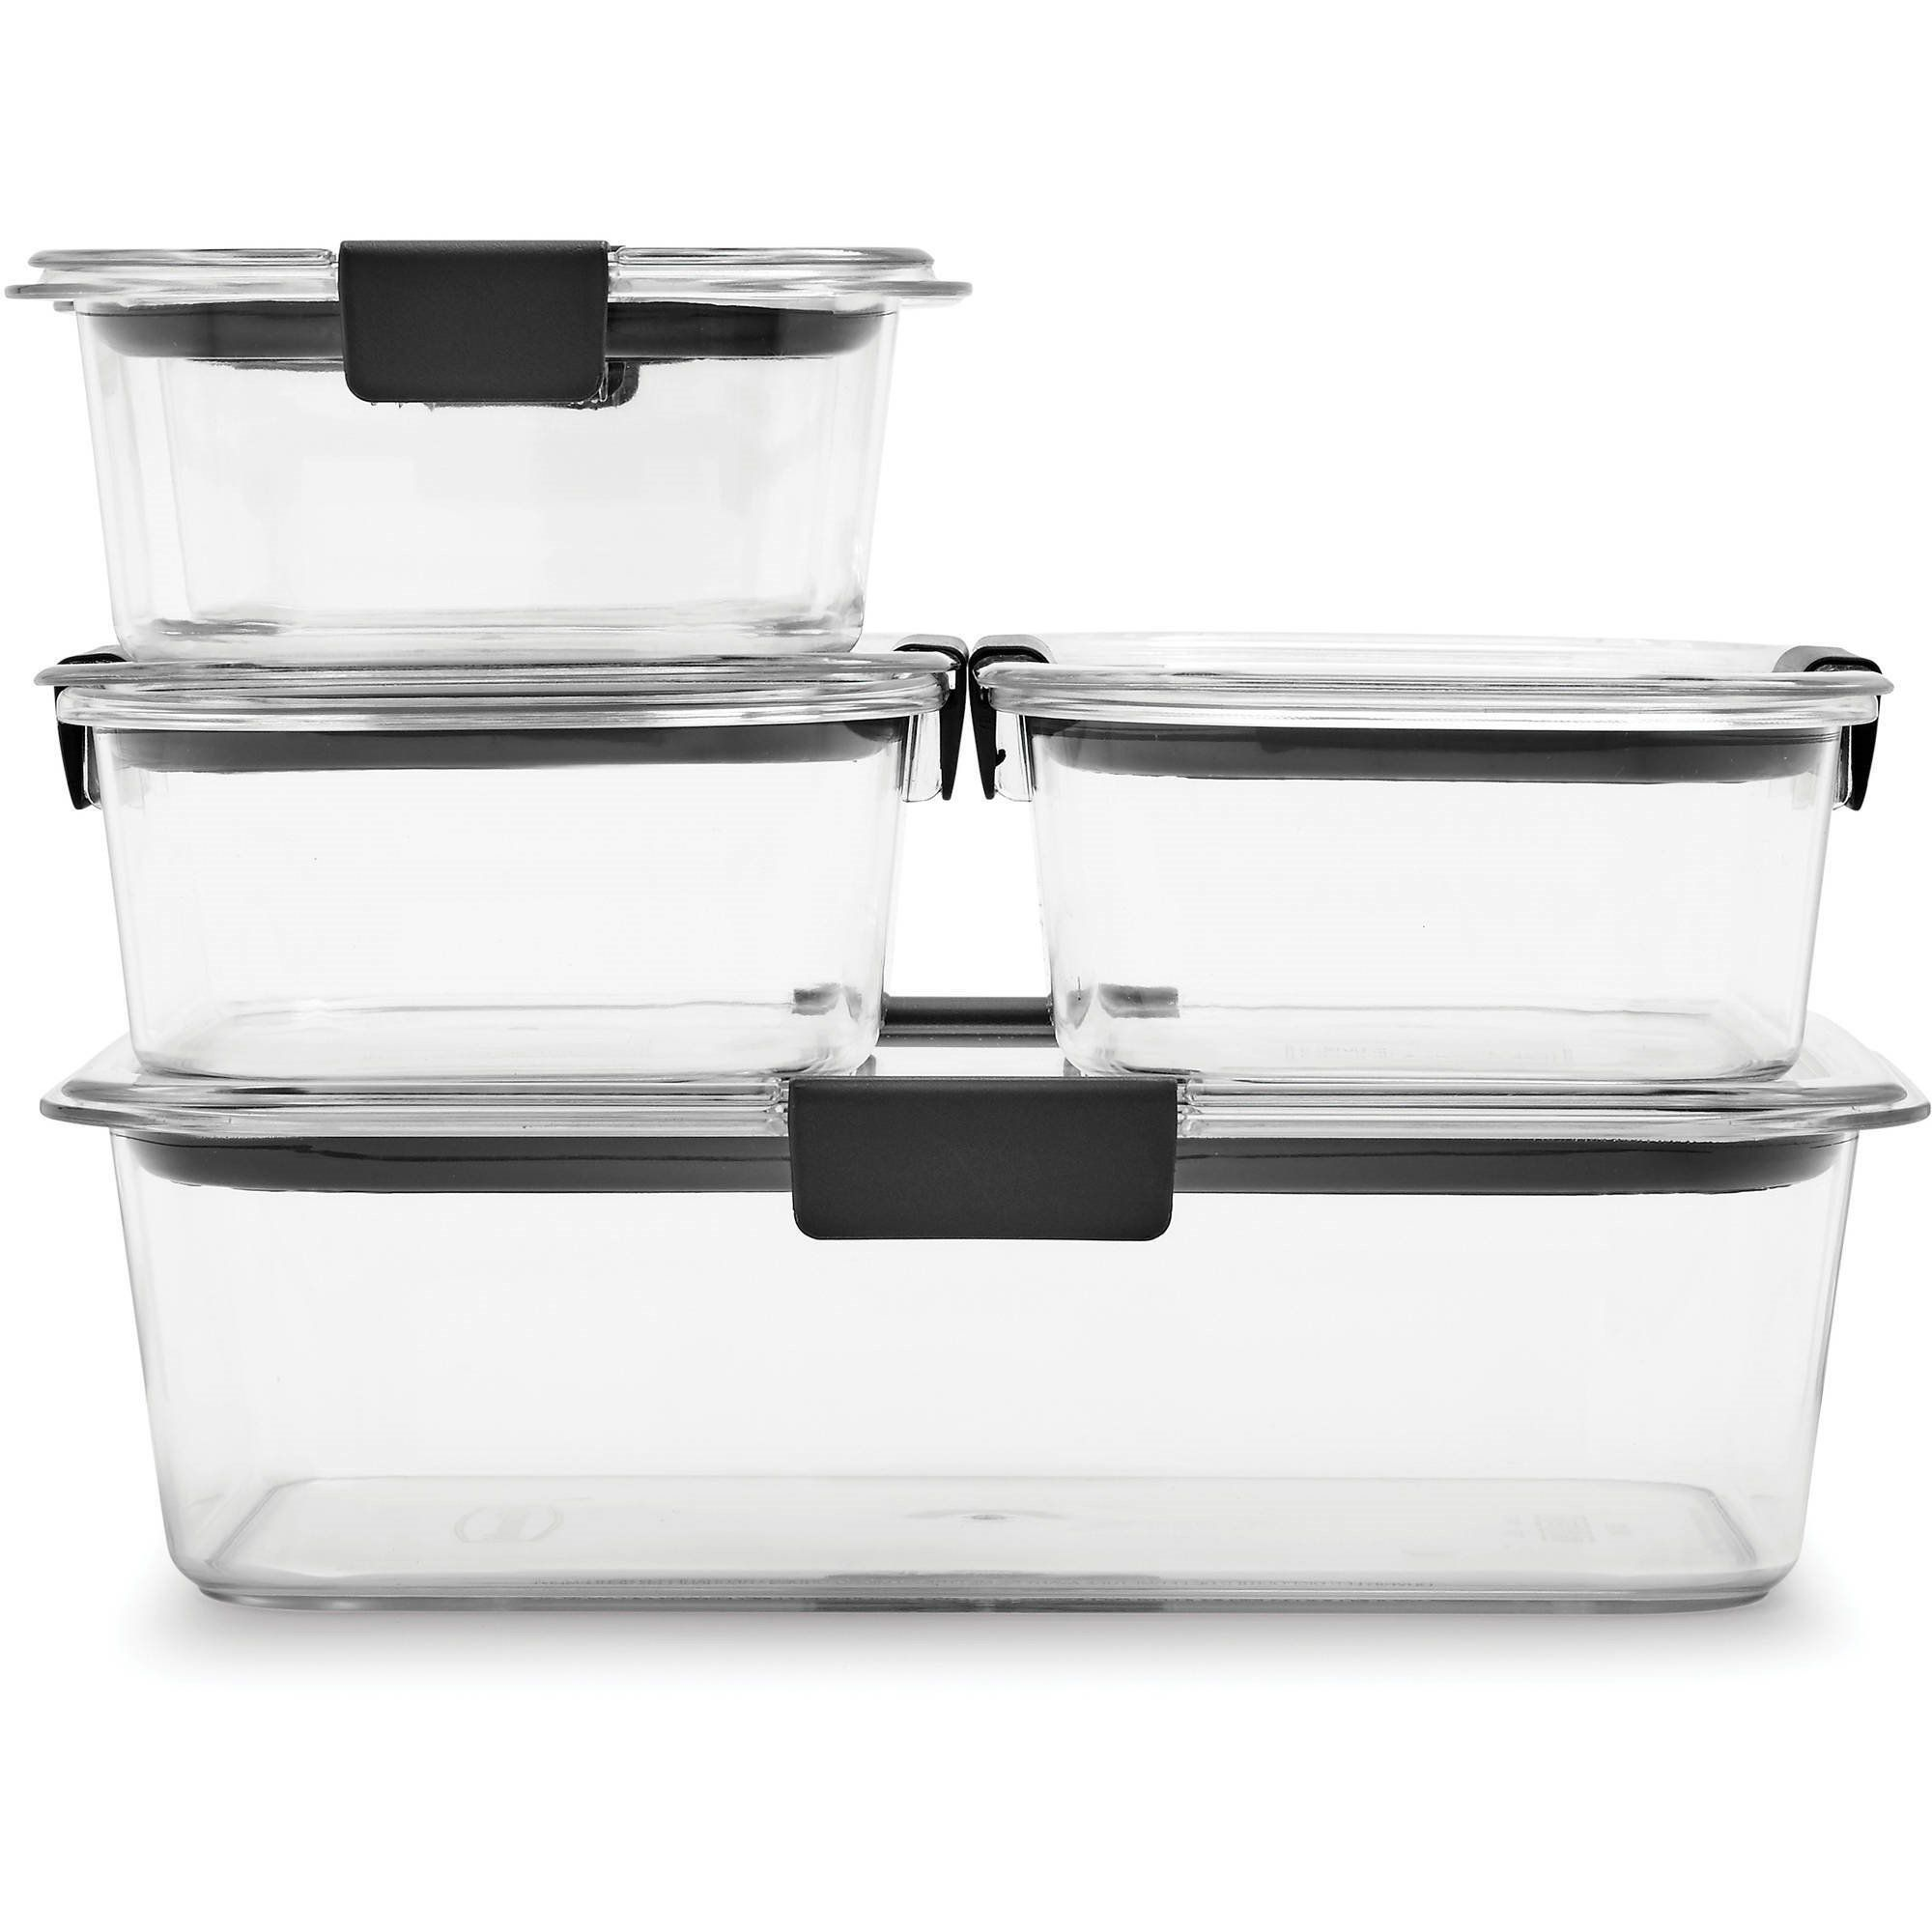 Rubbermaid Brilliance Food Storage Containers, 10-Piece ...